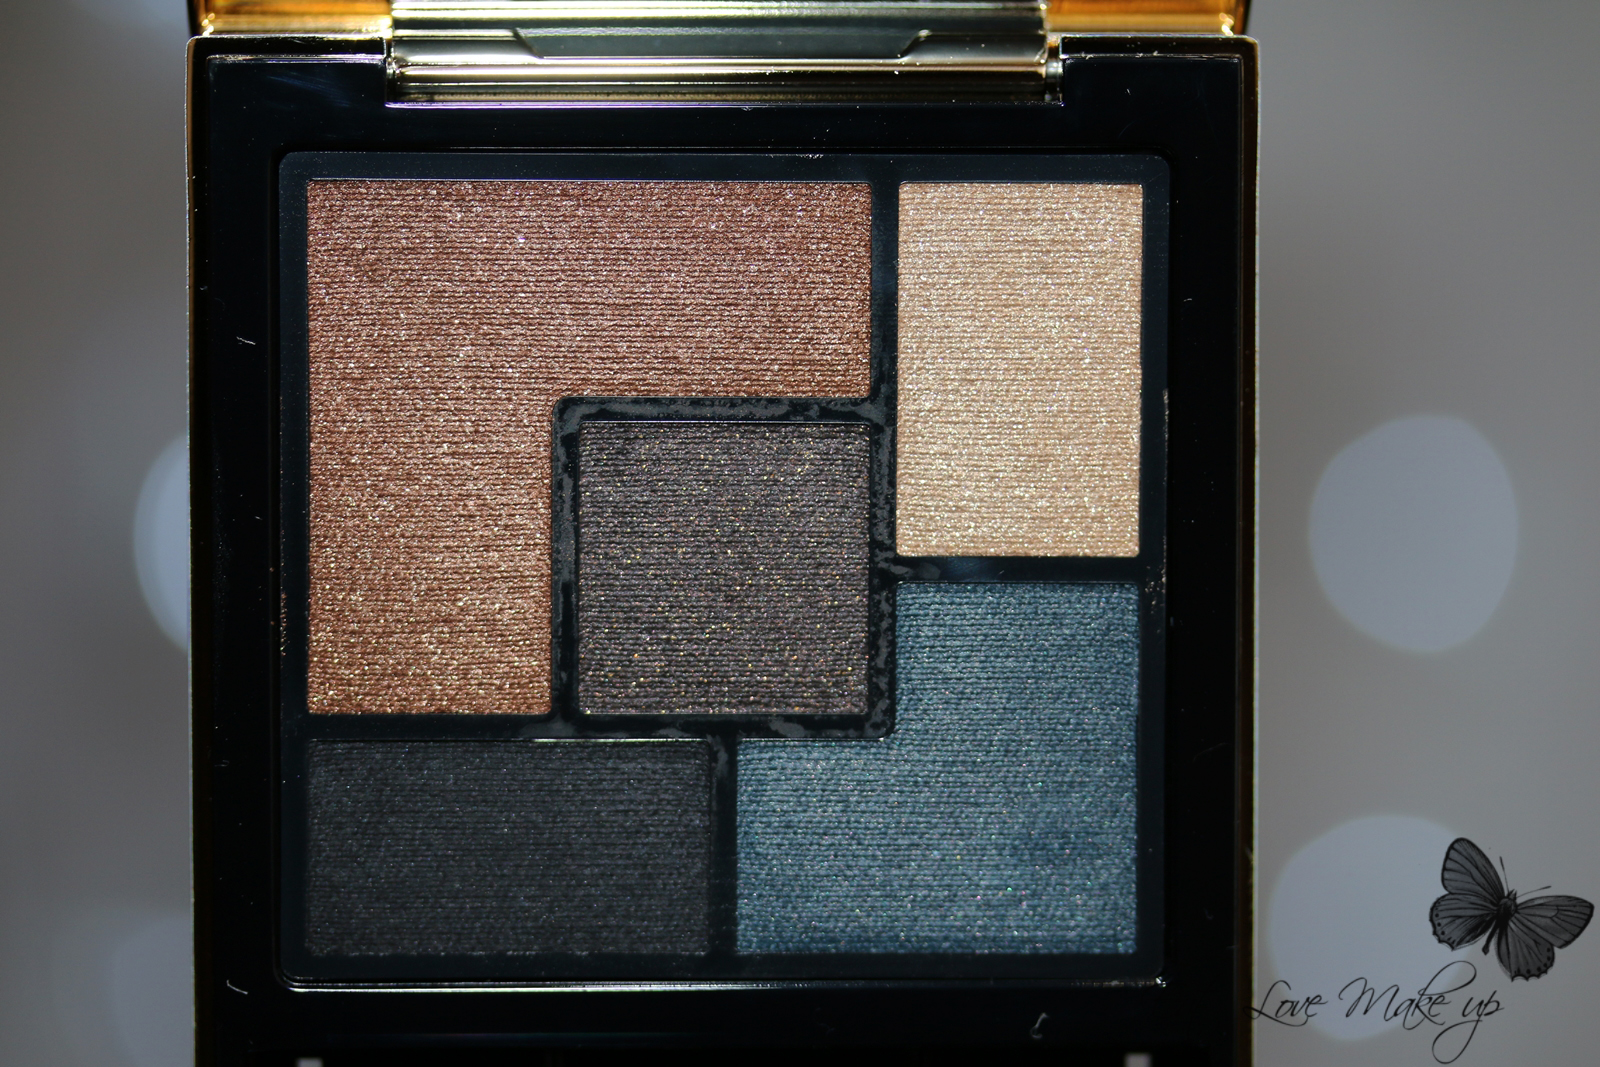 Yves Saint Laurent Fetish Eyeshadow Palette